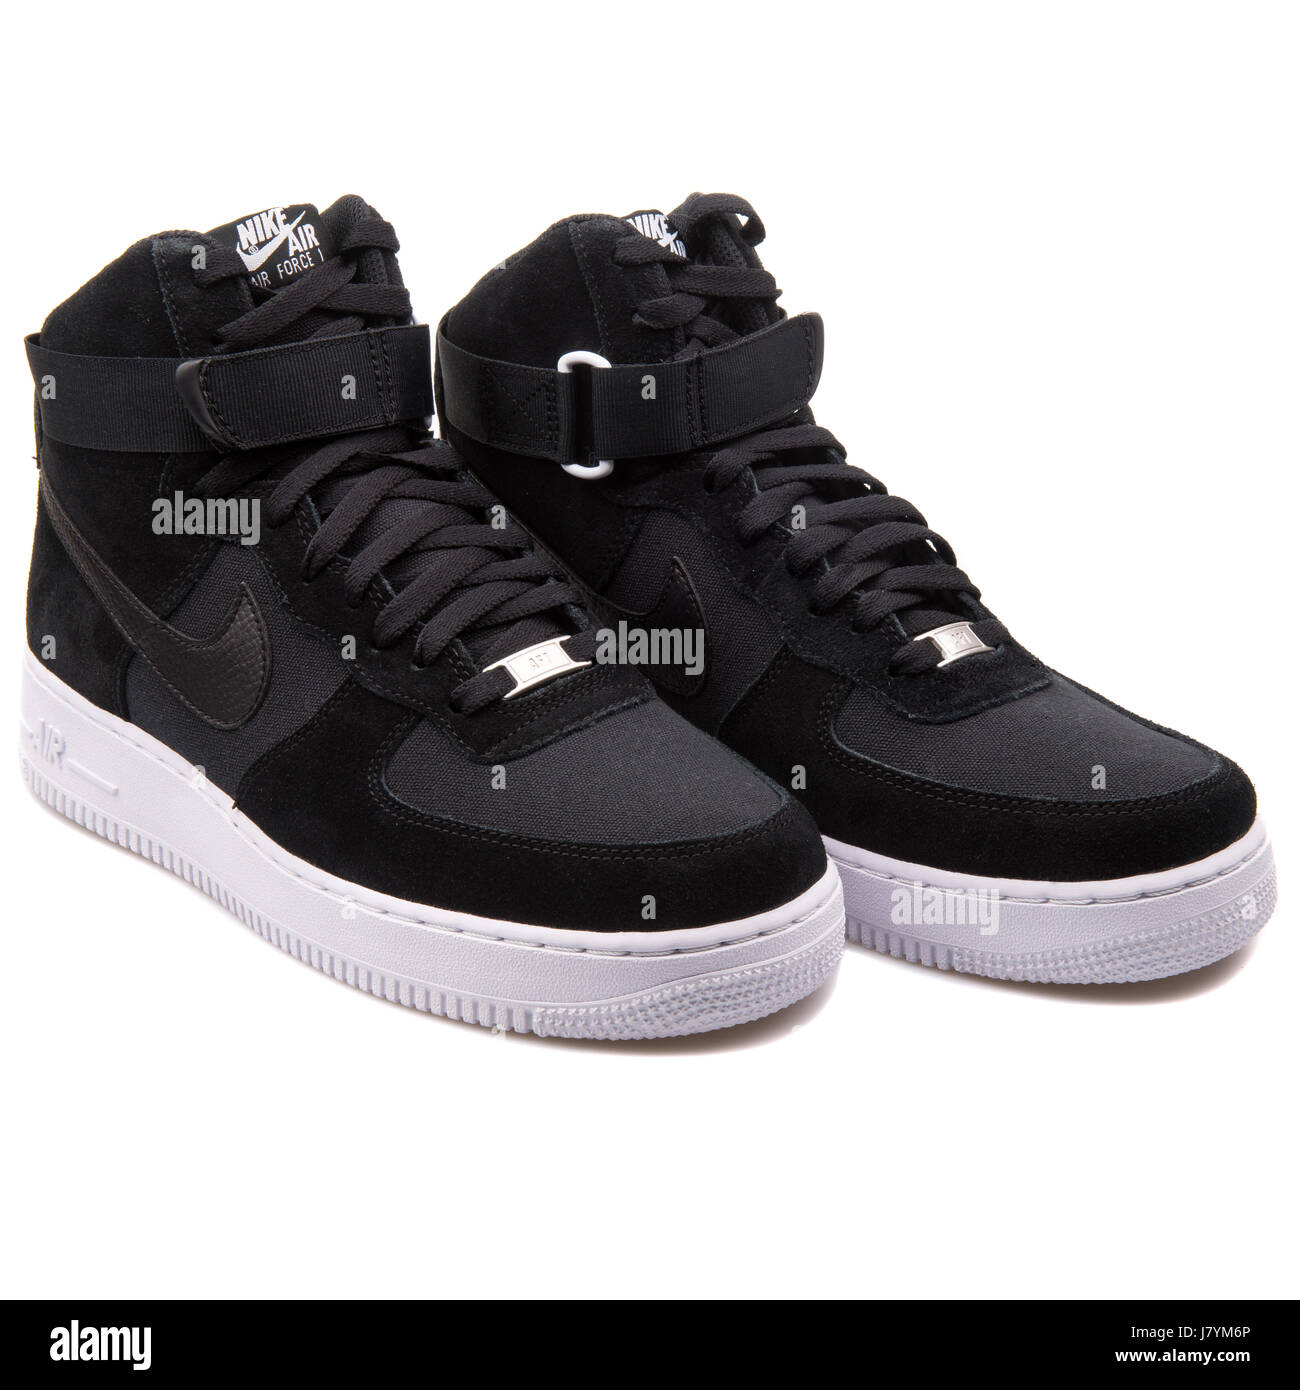 5df480ec Nike Air Force 1 High '07 Black Men Leather Sneakers - 315121-033 ...